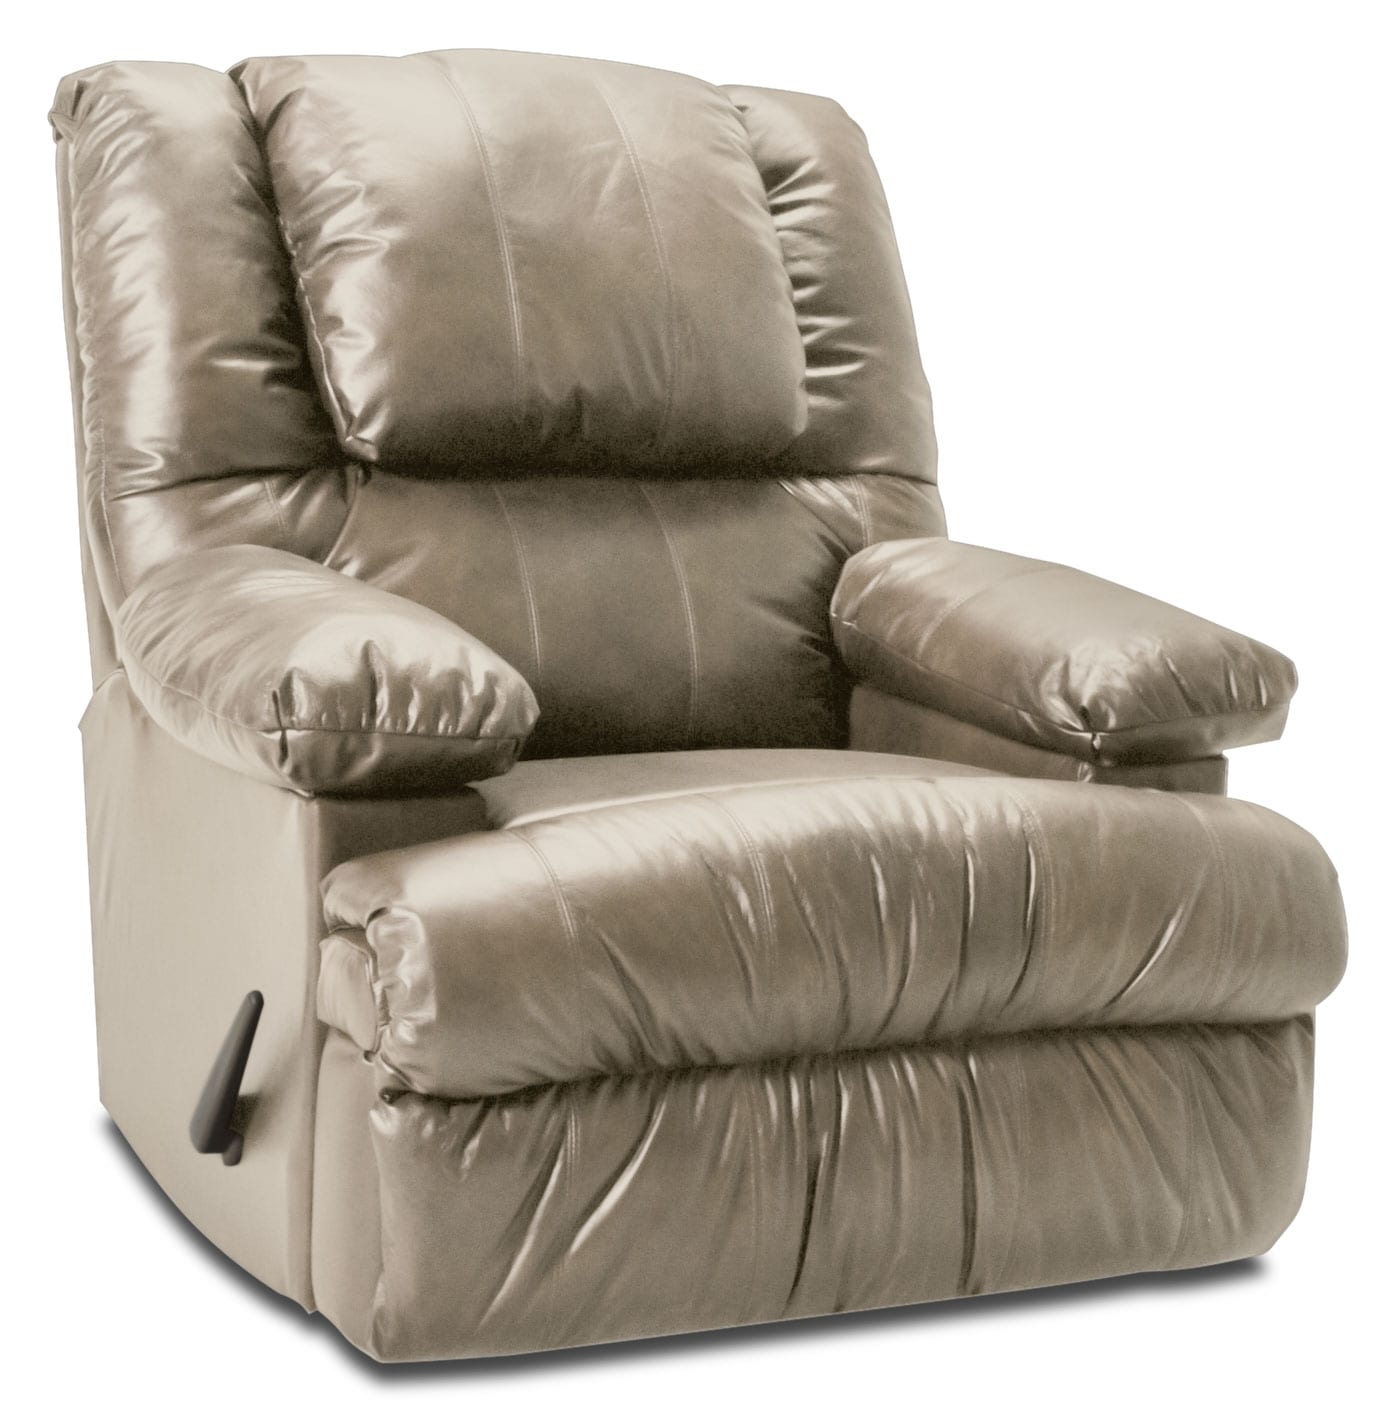 Designed2B Recliner 5598 Bonded Leather Rocker with Storage Arms - Putty